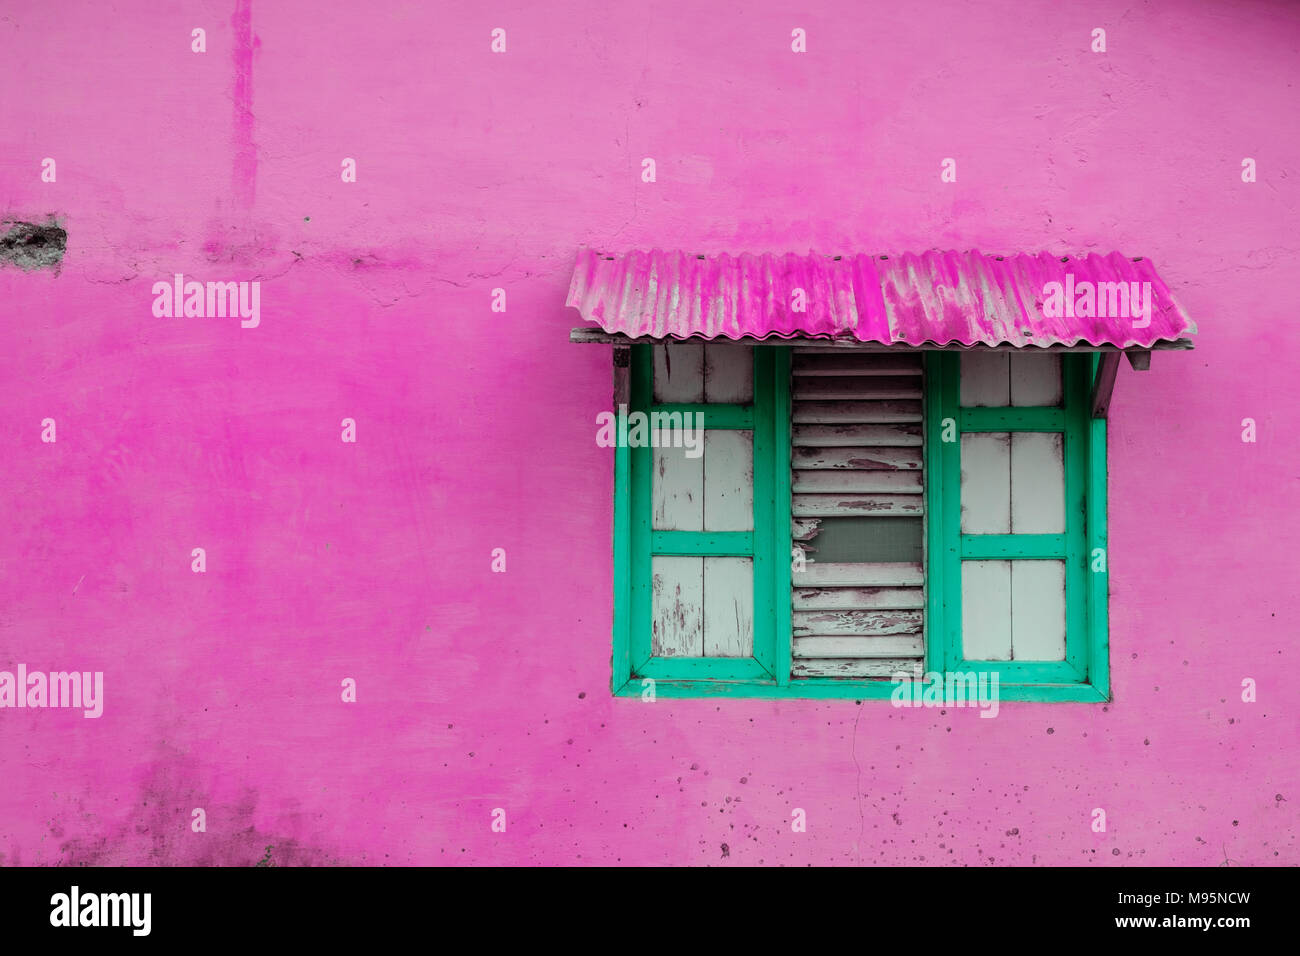 pink building exterior, vintage wall with closed window and wooden ...